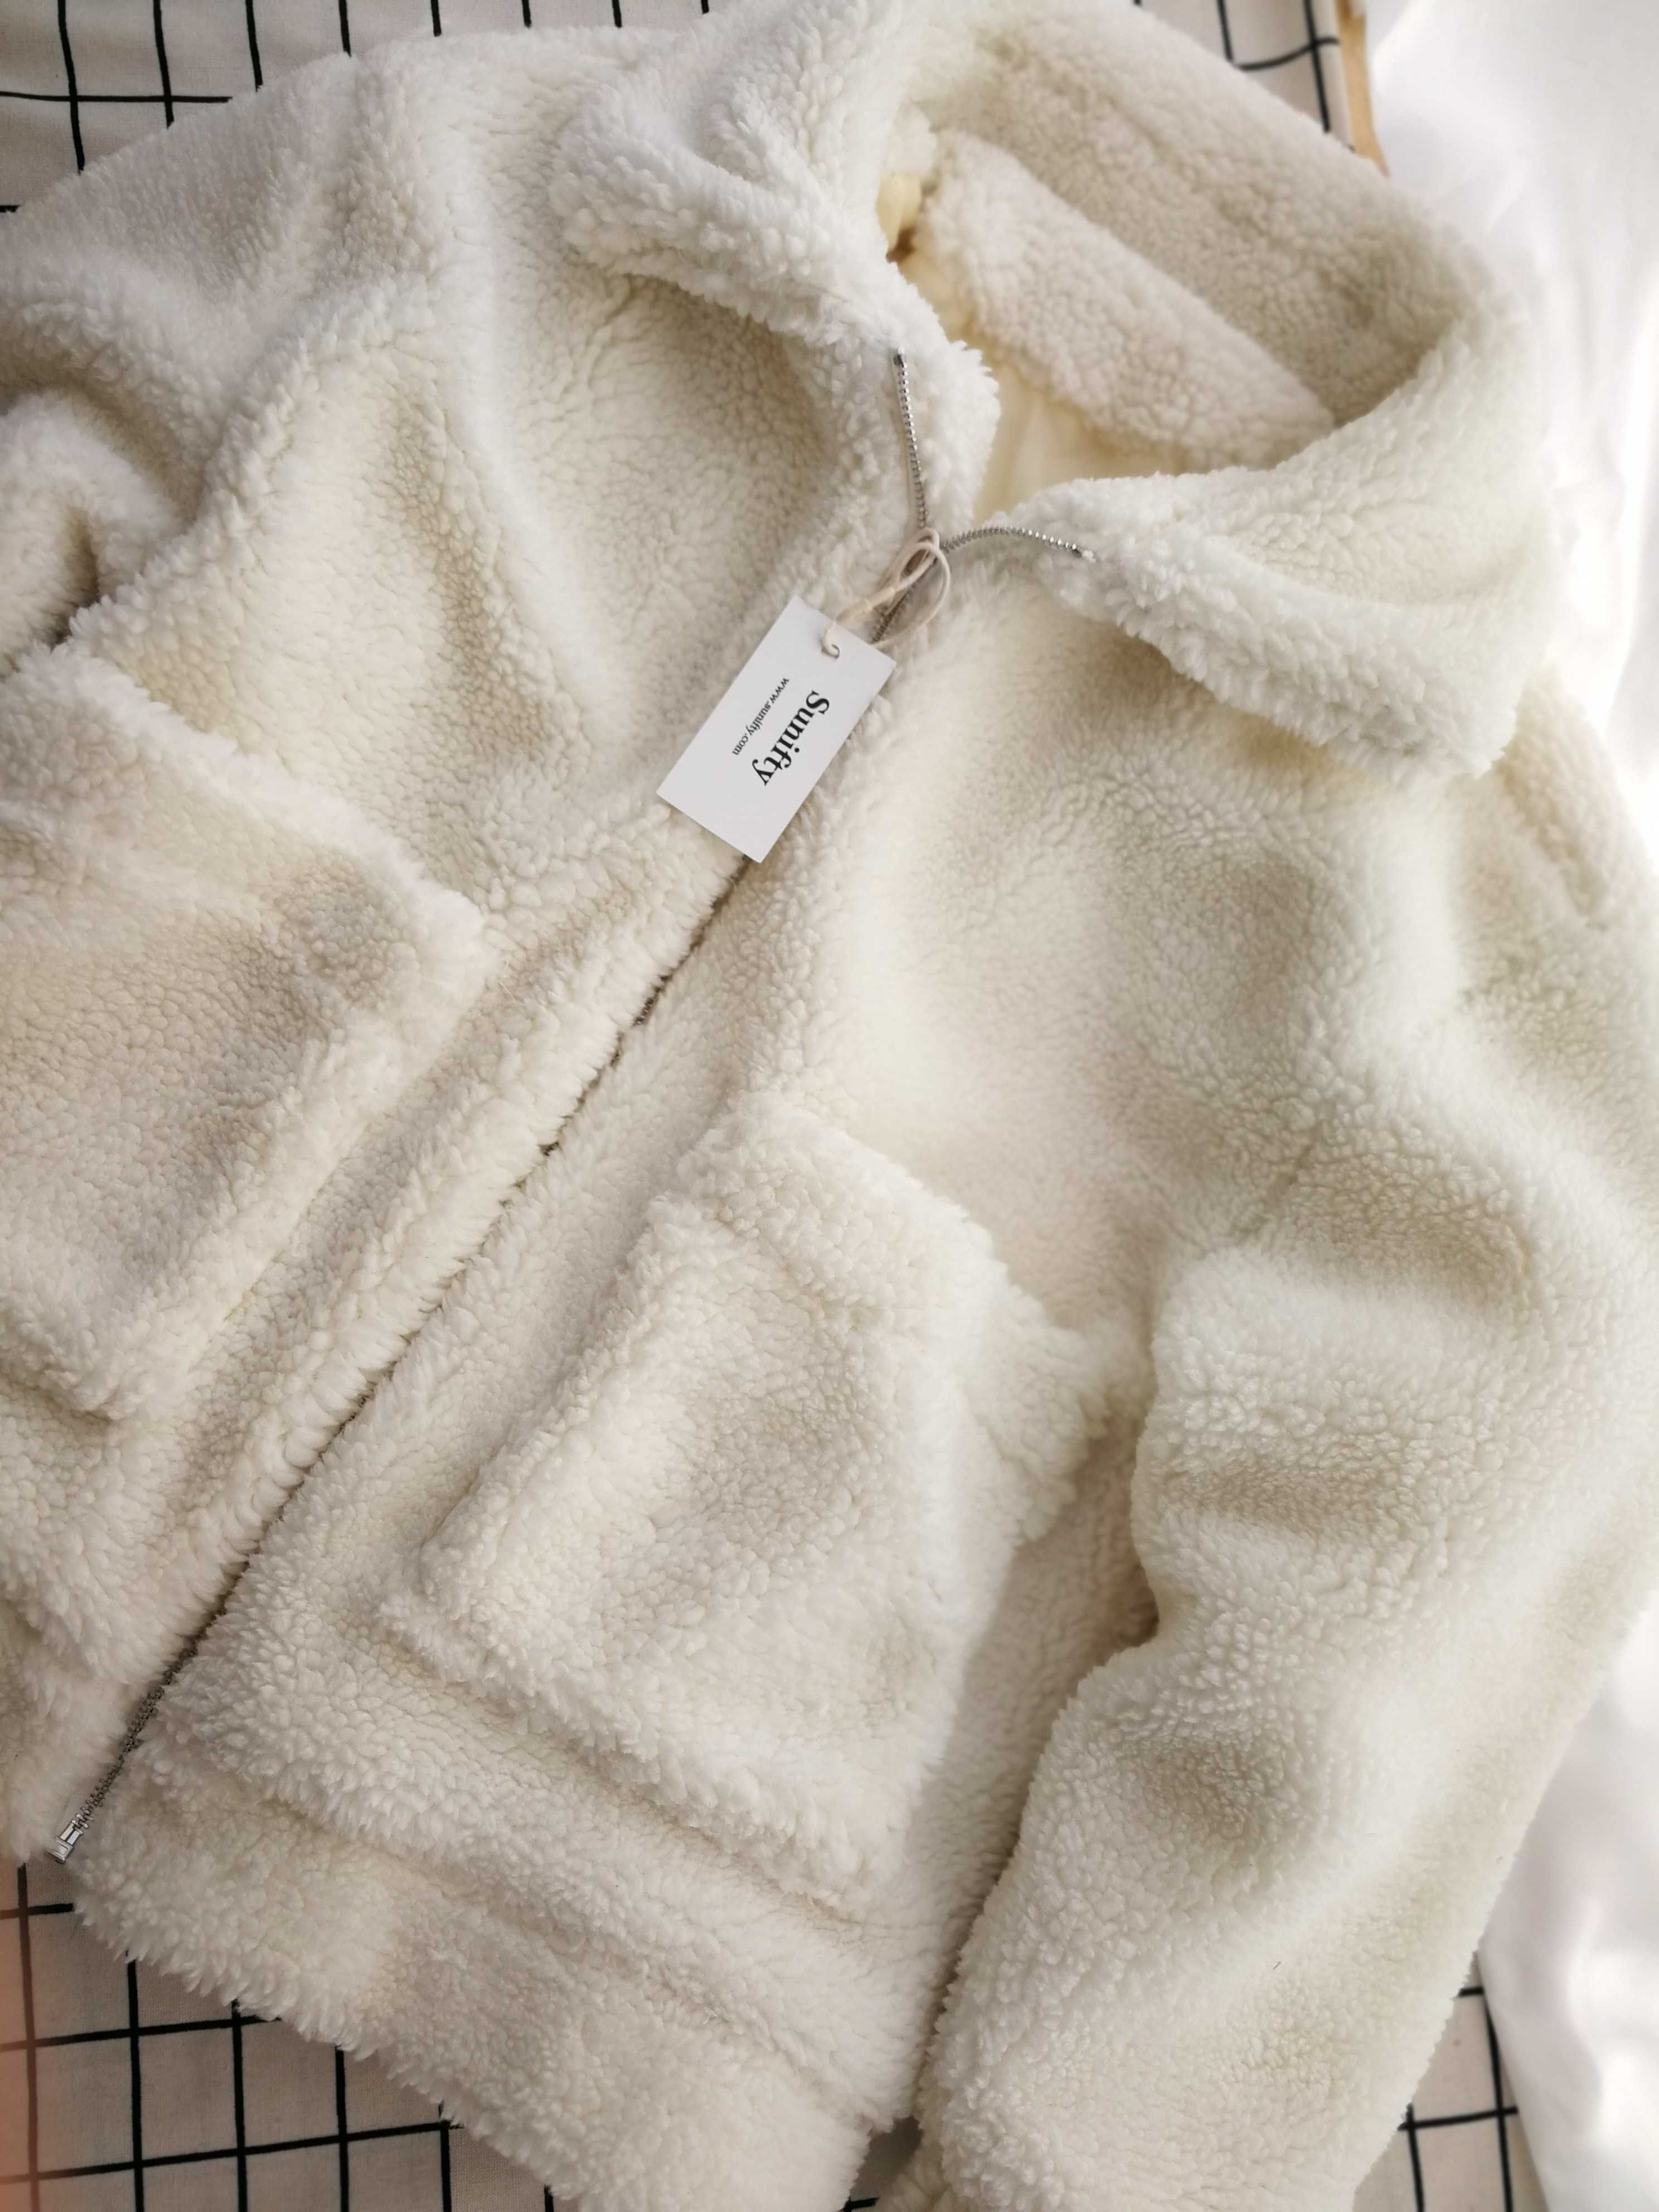 58699fb0292 Buy oversized teddy bear coat, Get the button up suede skirt at 30% OFF  faux fur coats and jackets cream white teddy fur jacket fluffy coat women's  coats ...